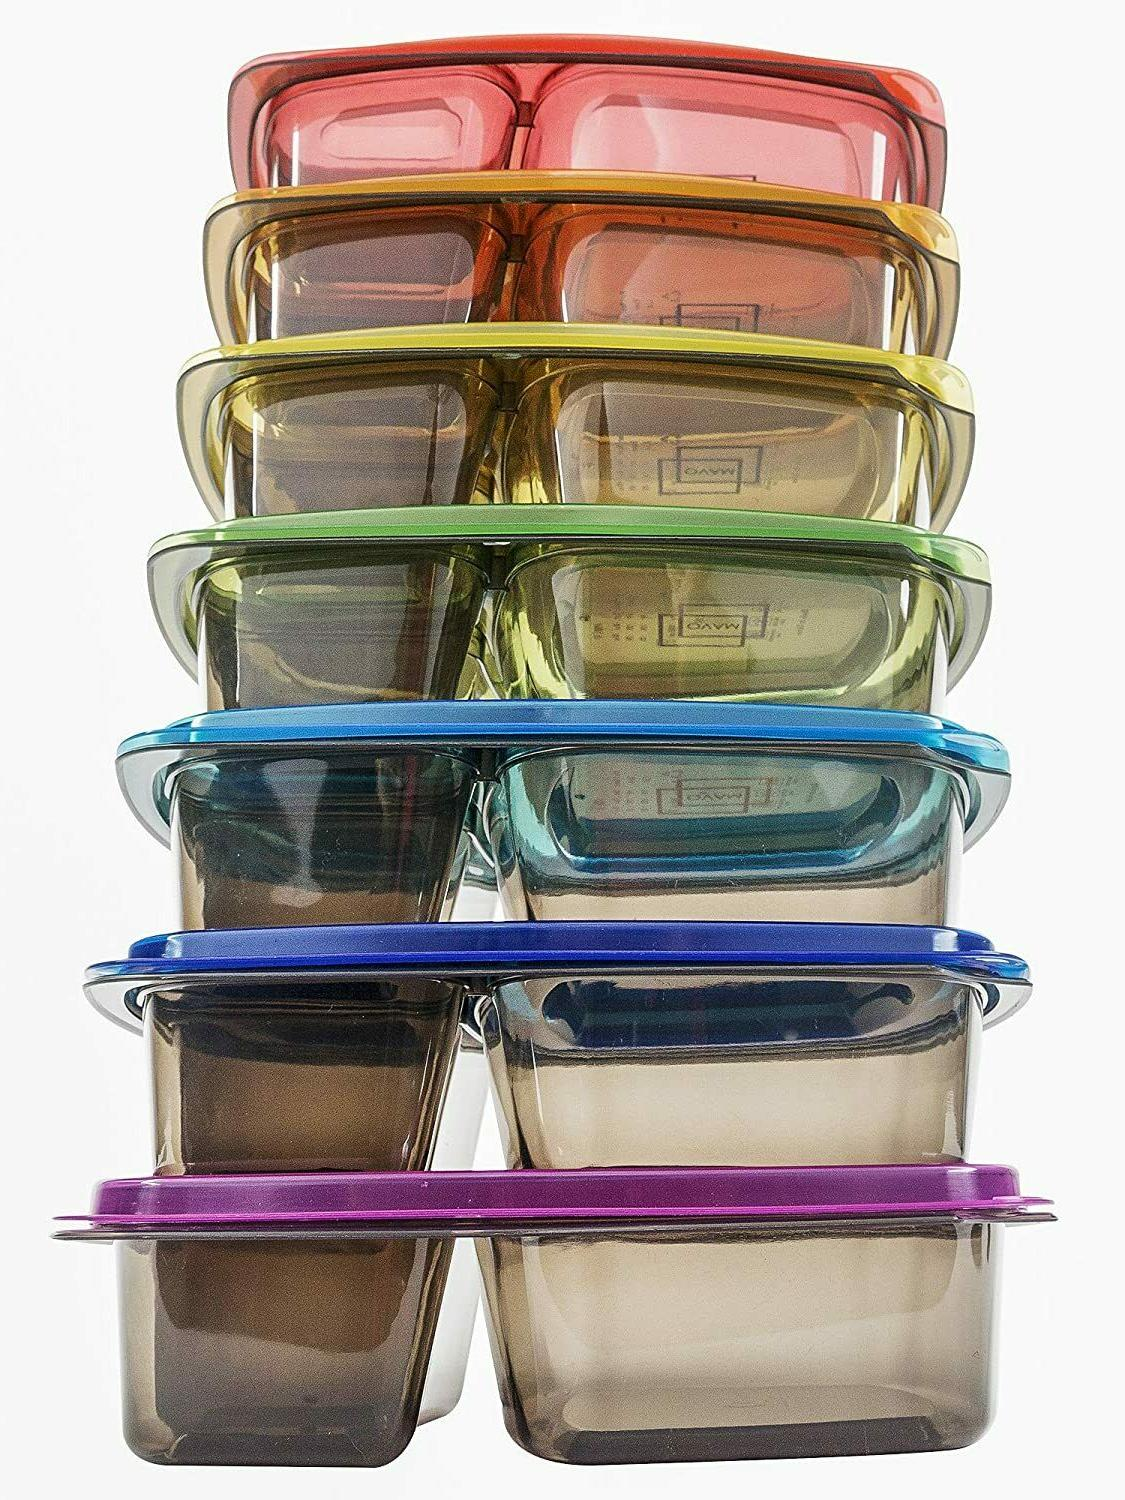 meal food prep containers storage 3 compartment